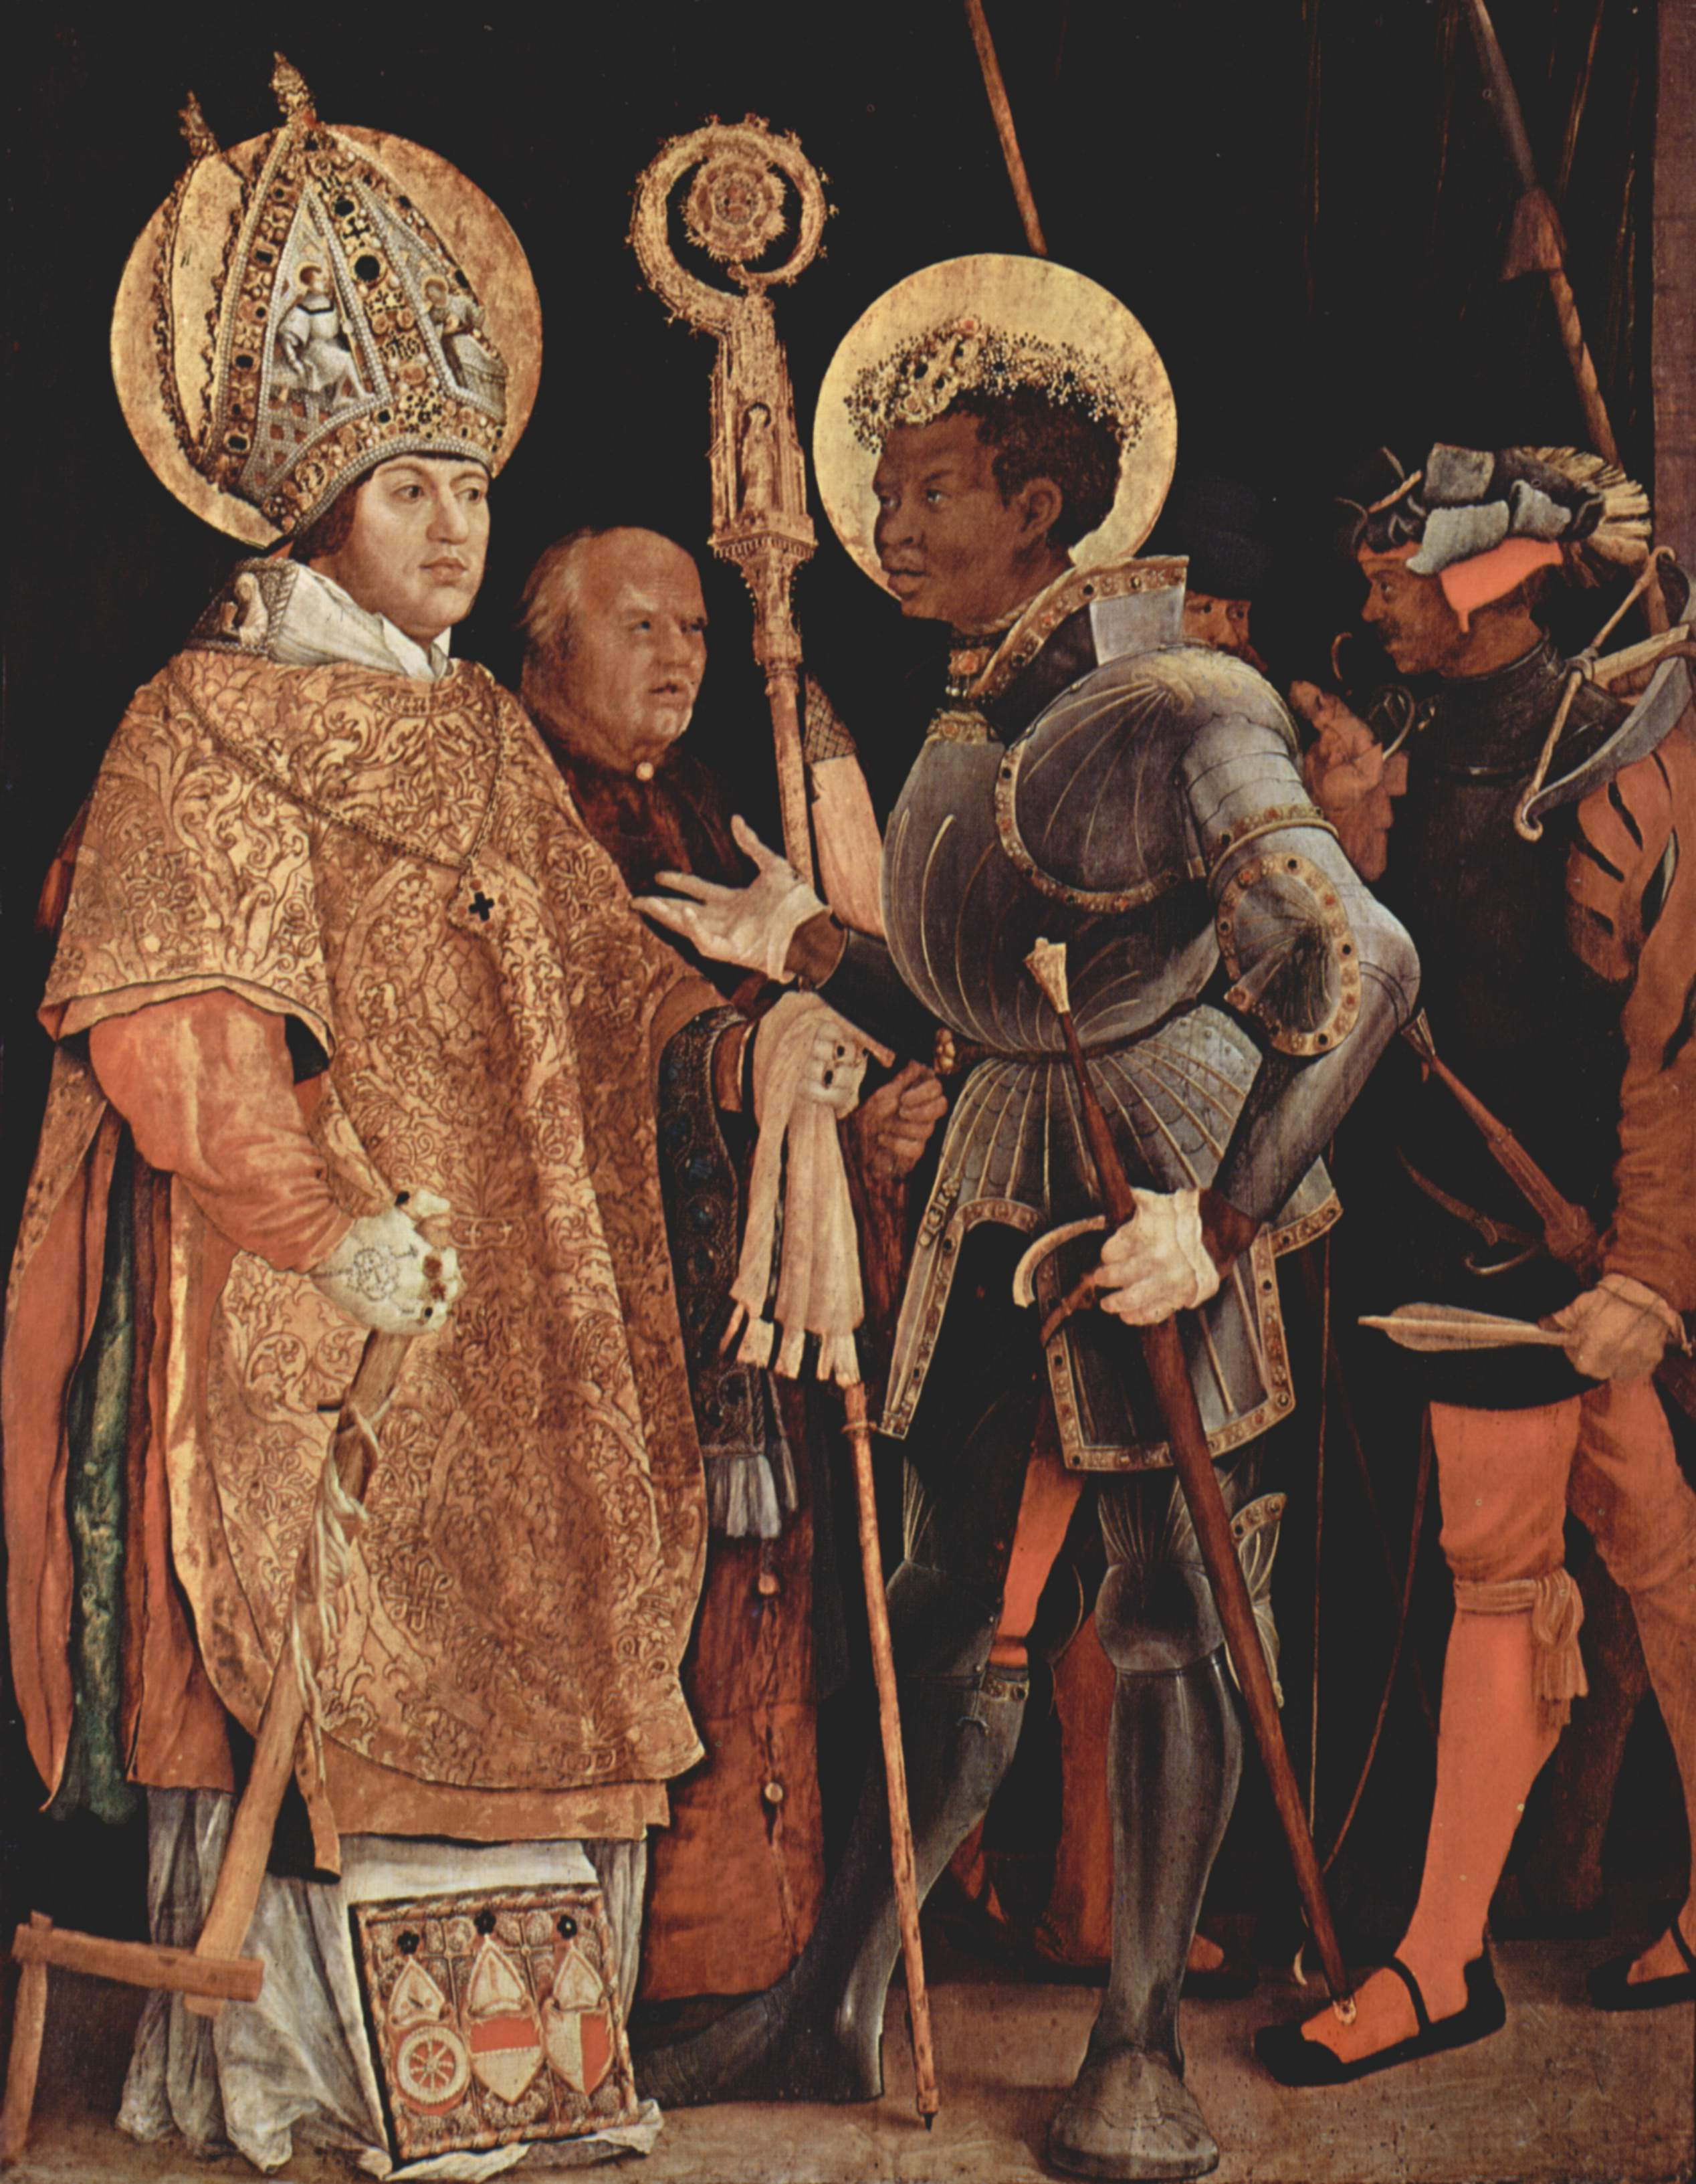 saint maurice, christian martyr and person of color